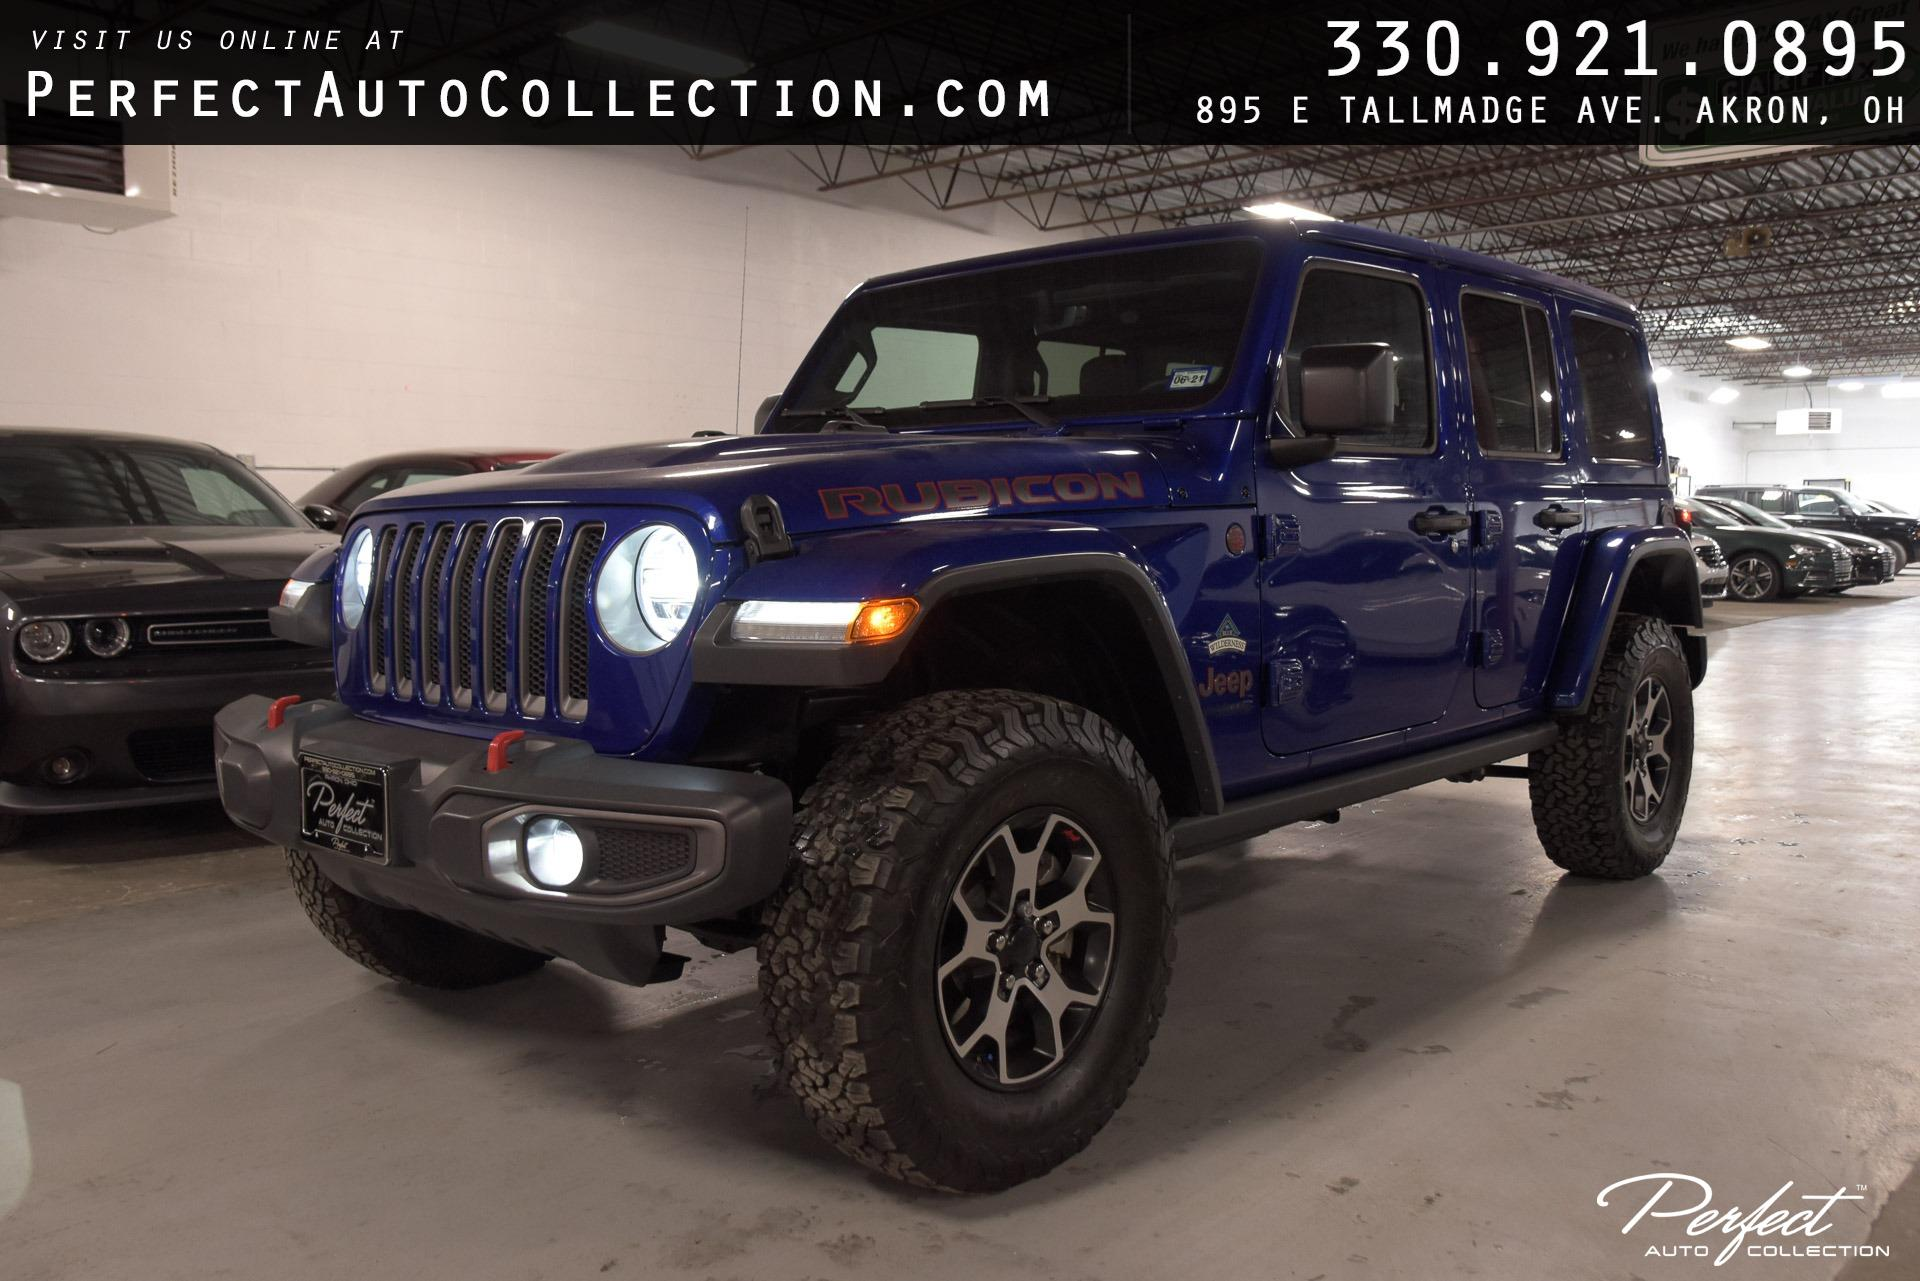 Used 2020 Jeep Wrangler Unlimited Rubicon for sale $49,495 at Perfect Auto Collection in Akron OH 44310 1